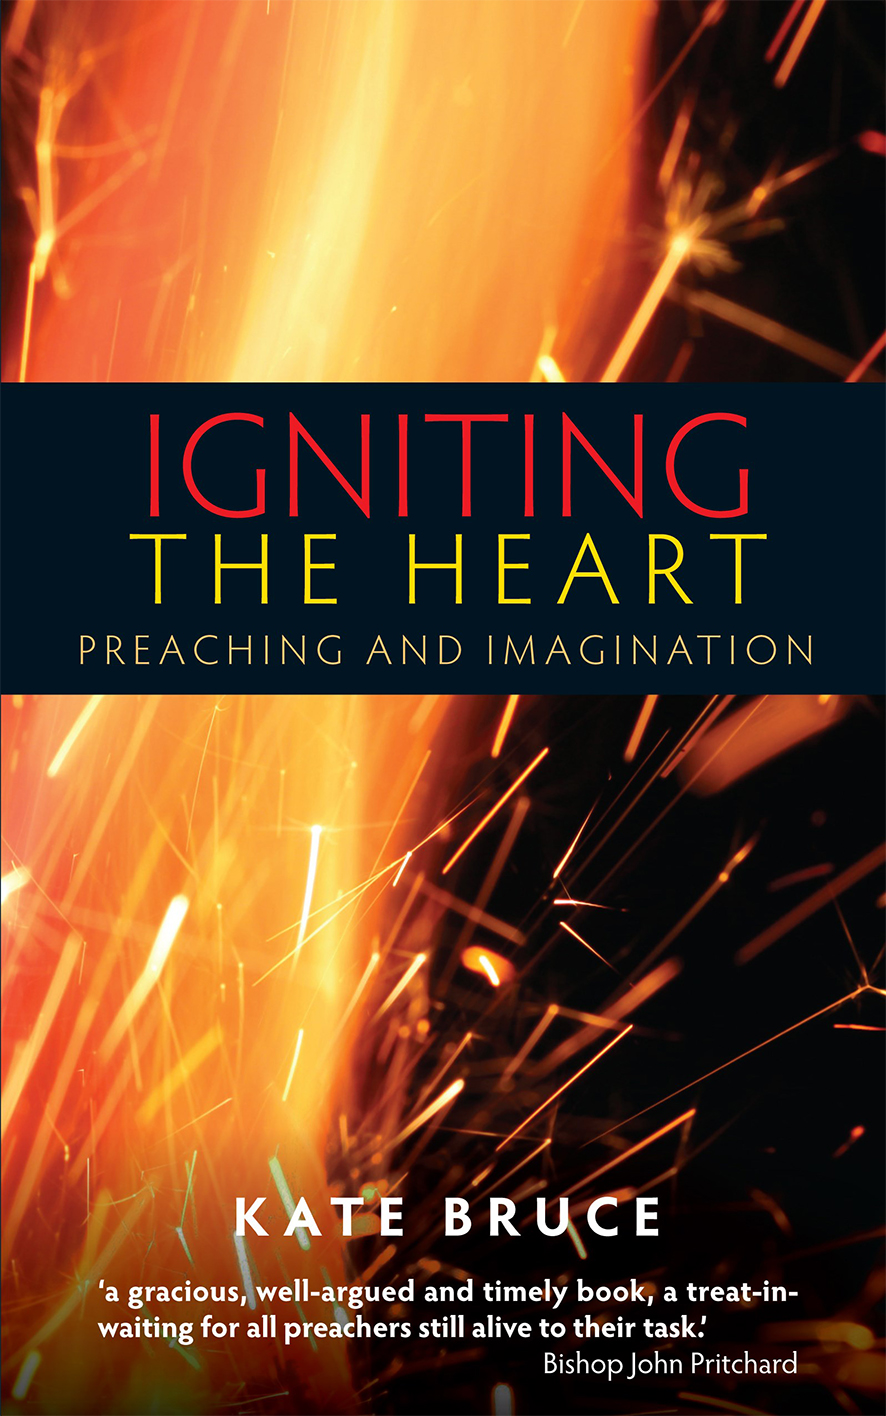 Igniting the Heart: Preaching and Imagination